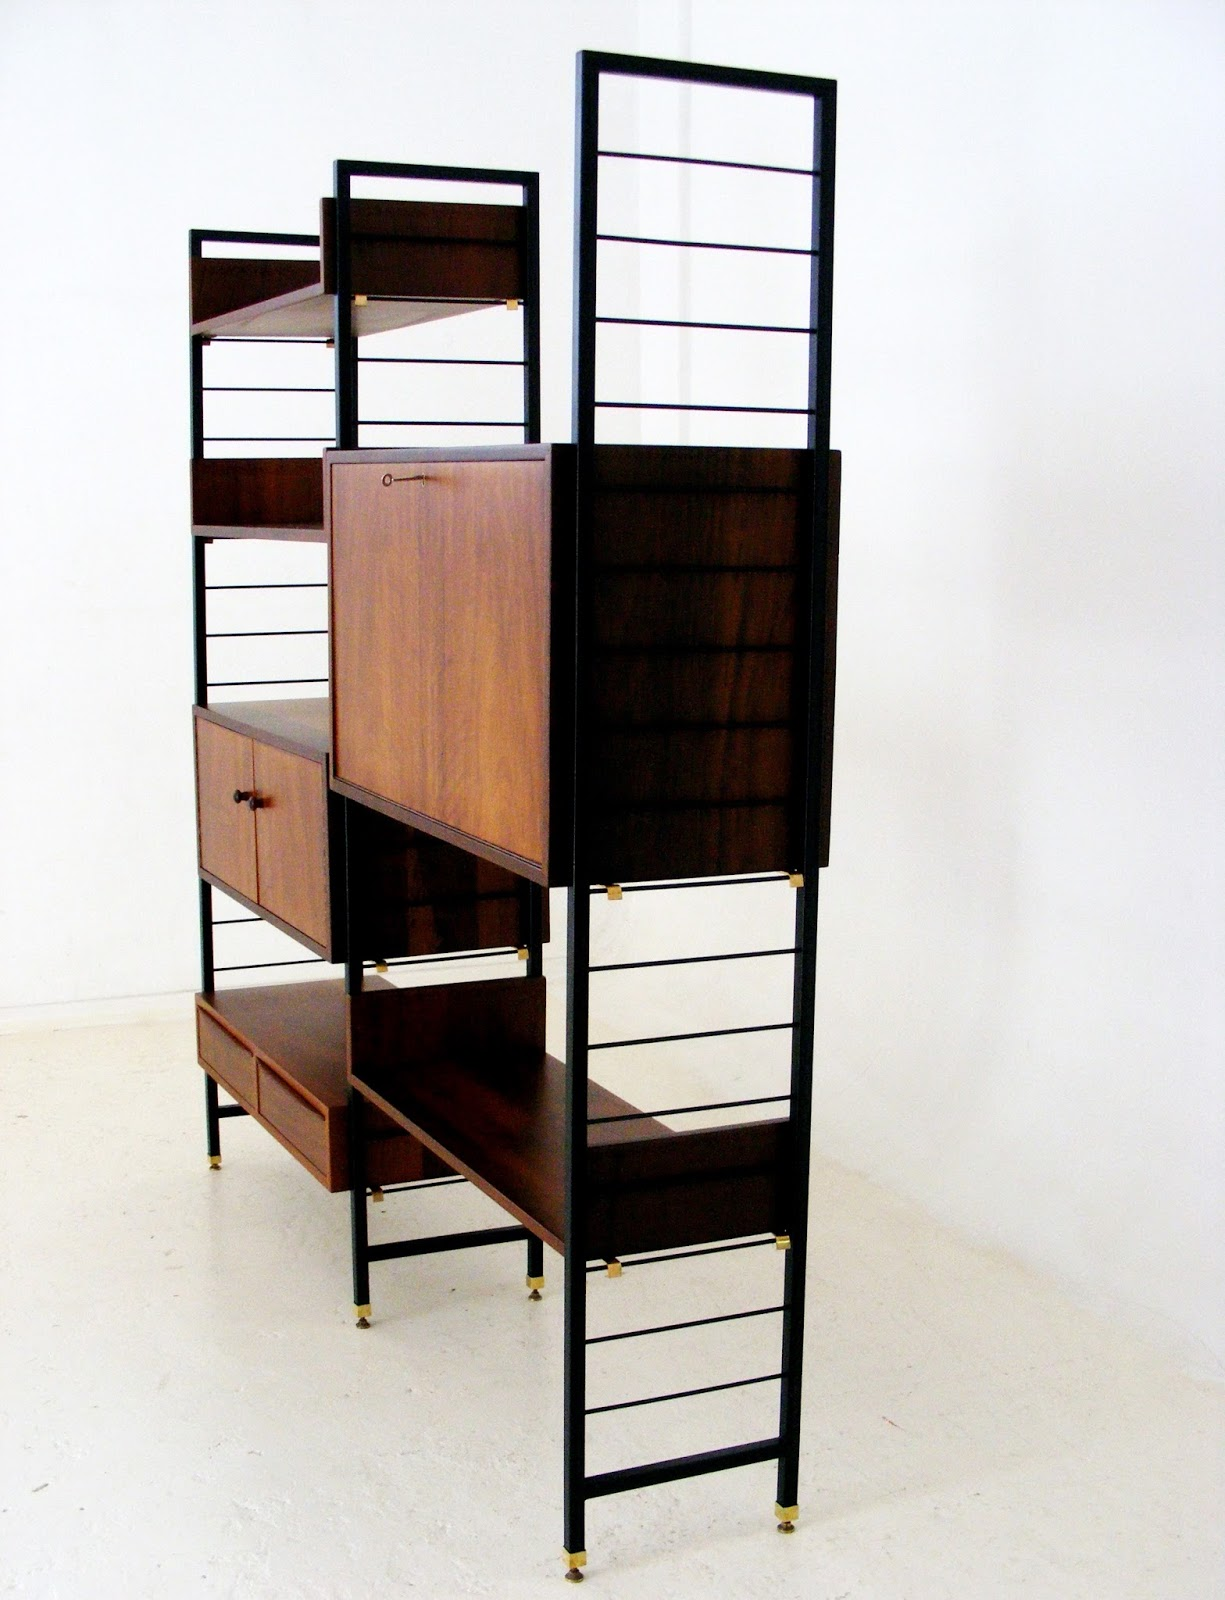 VAMP FURNITURE: A mid-century wall unit by EE Meyer _ 08 March 2018